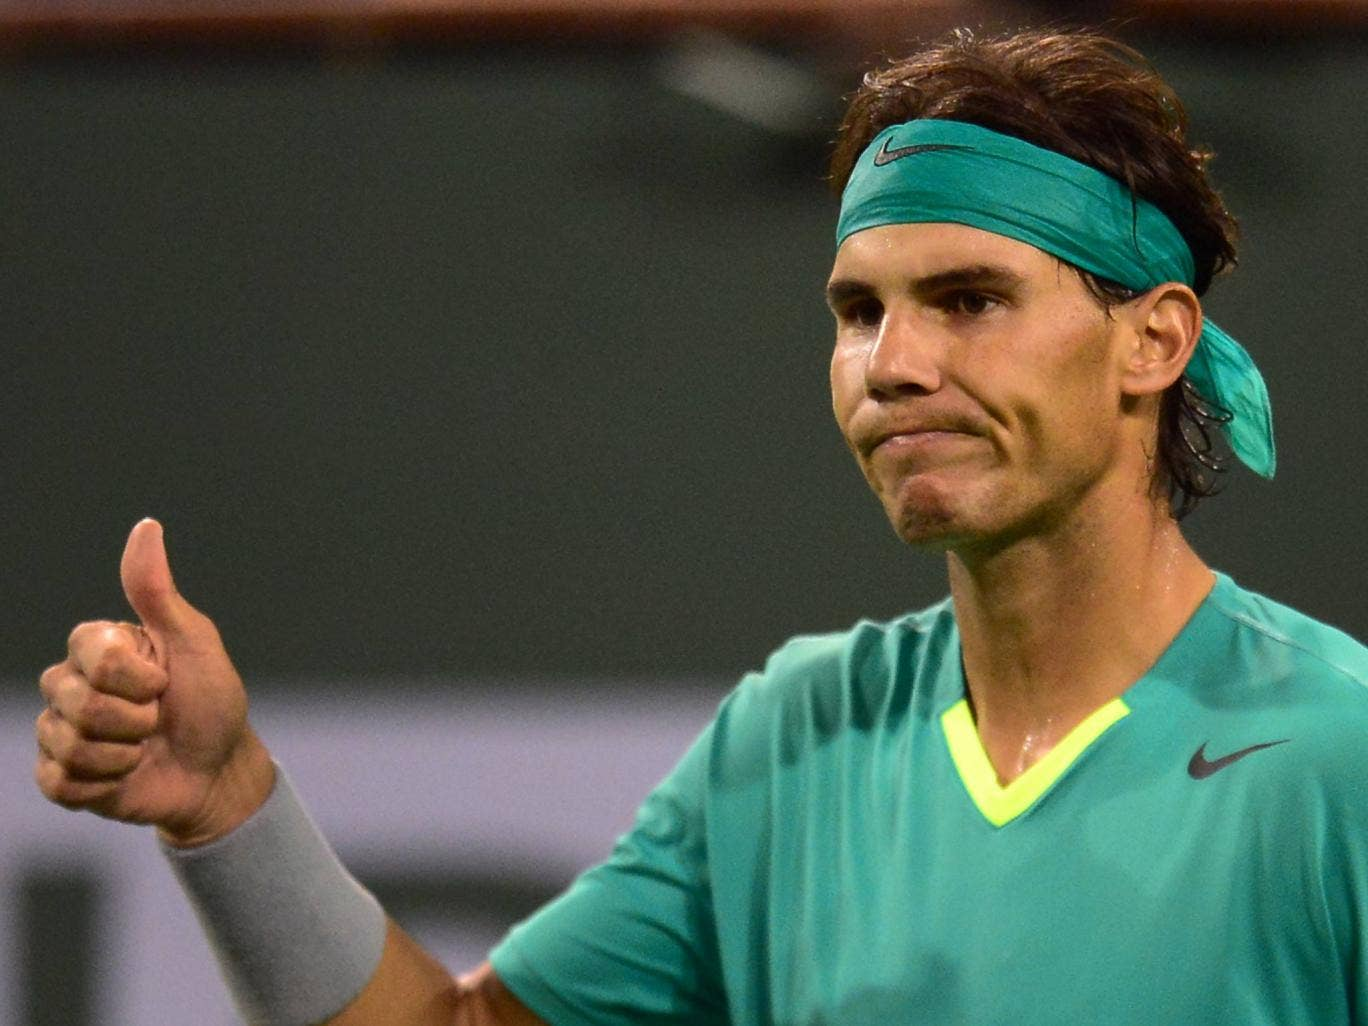 Rafael Nadal is on the comeback trail